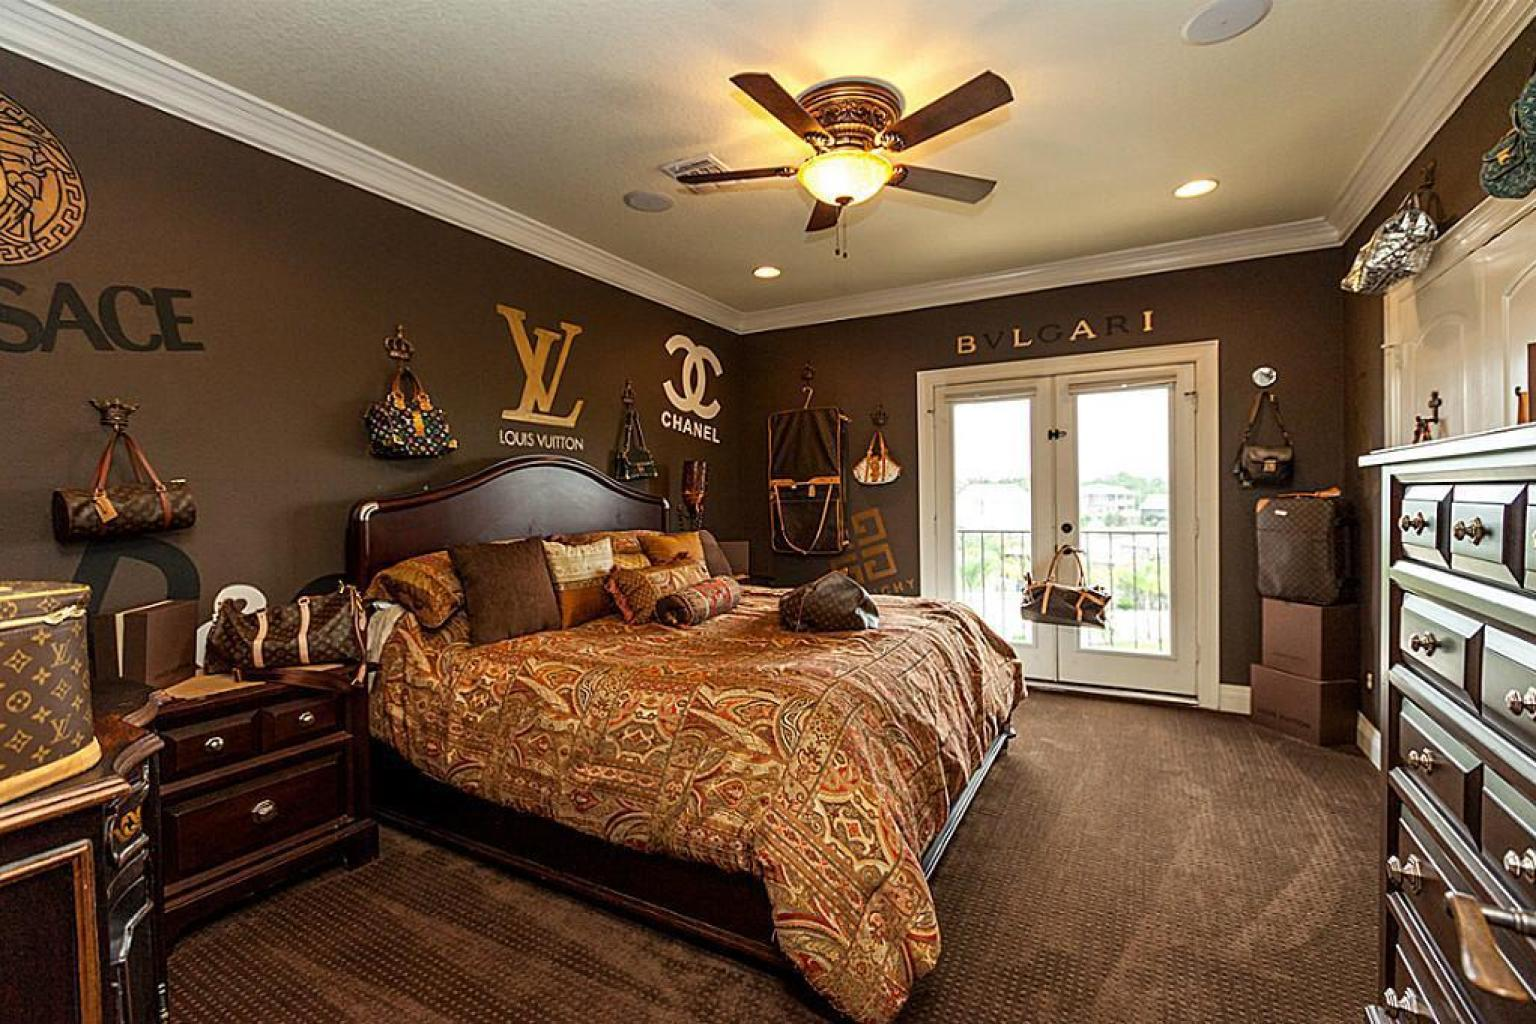 Louis vuitton bedroom in texas home for sale takes fashion for Bedroom room decor